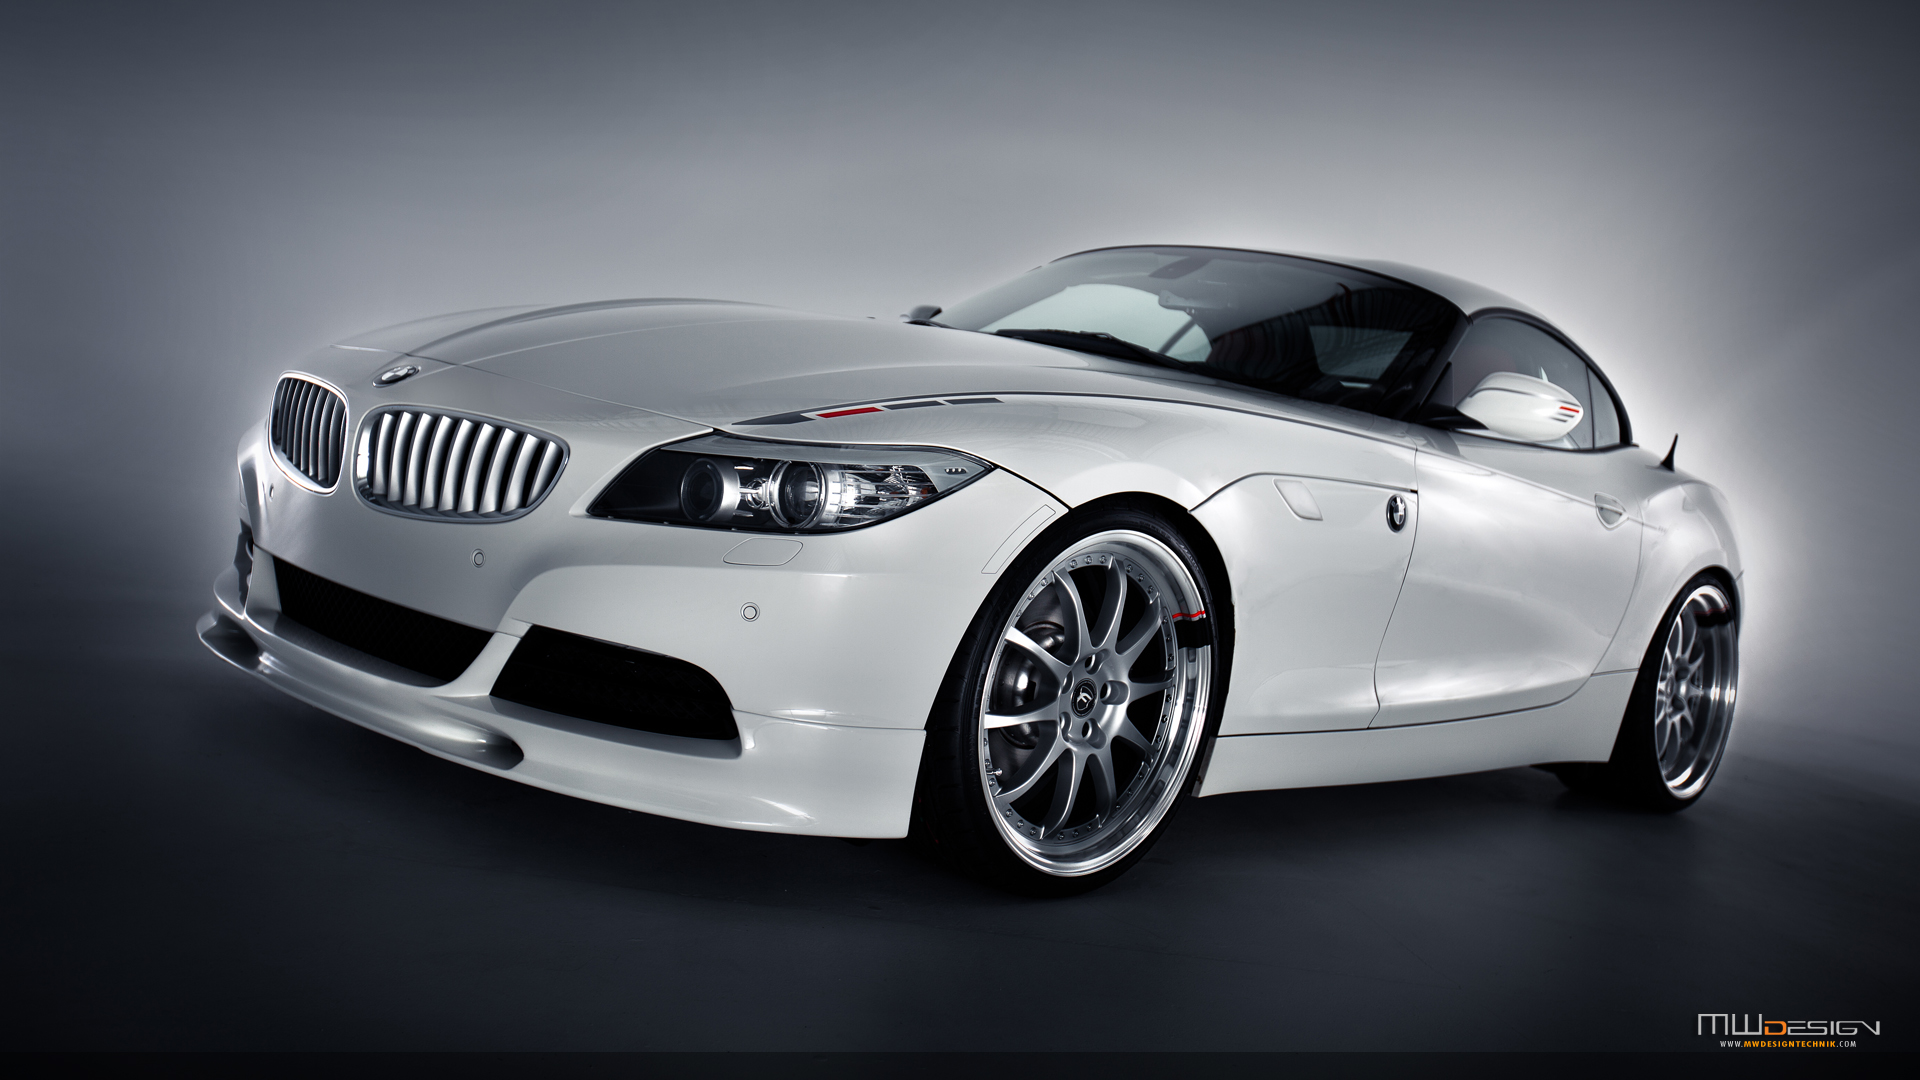 Mwdesigntechnik Blog 187 Mwdesign E89 Z4 White Flame